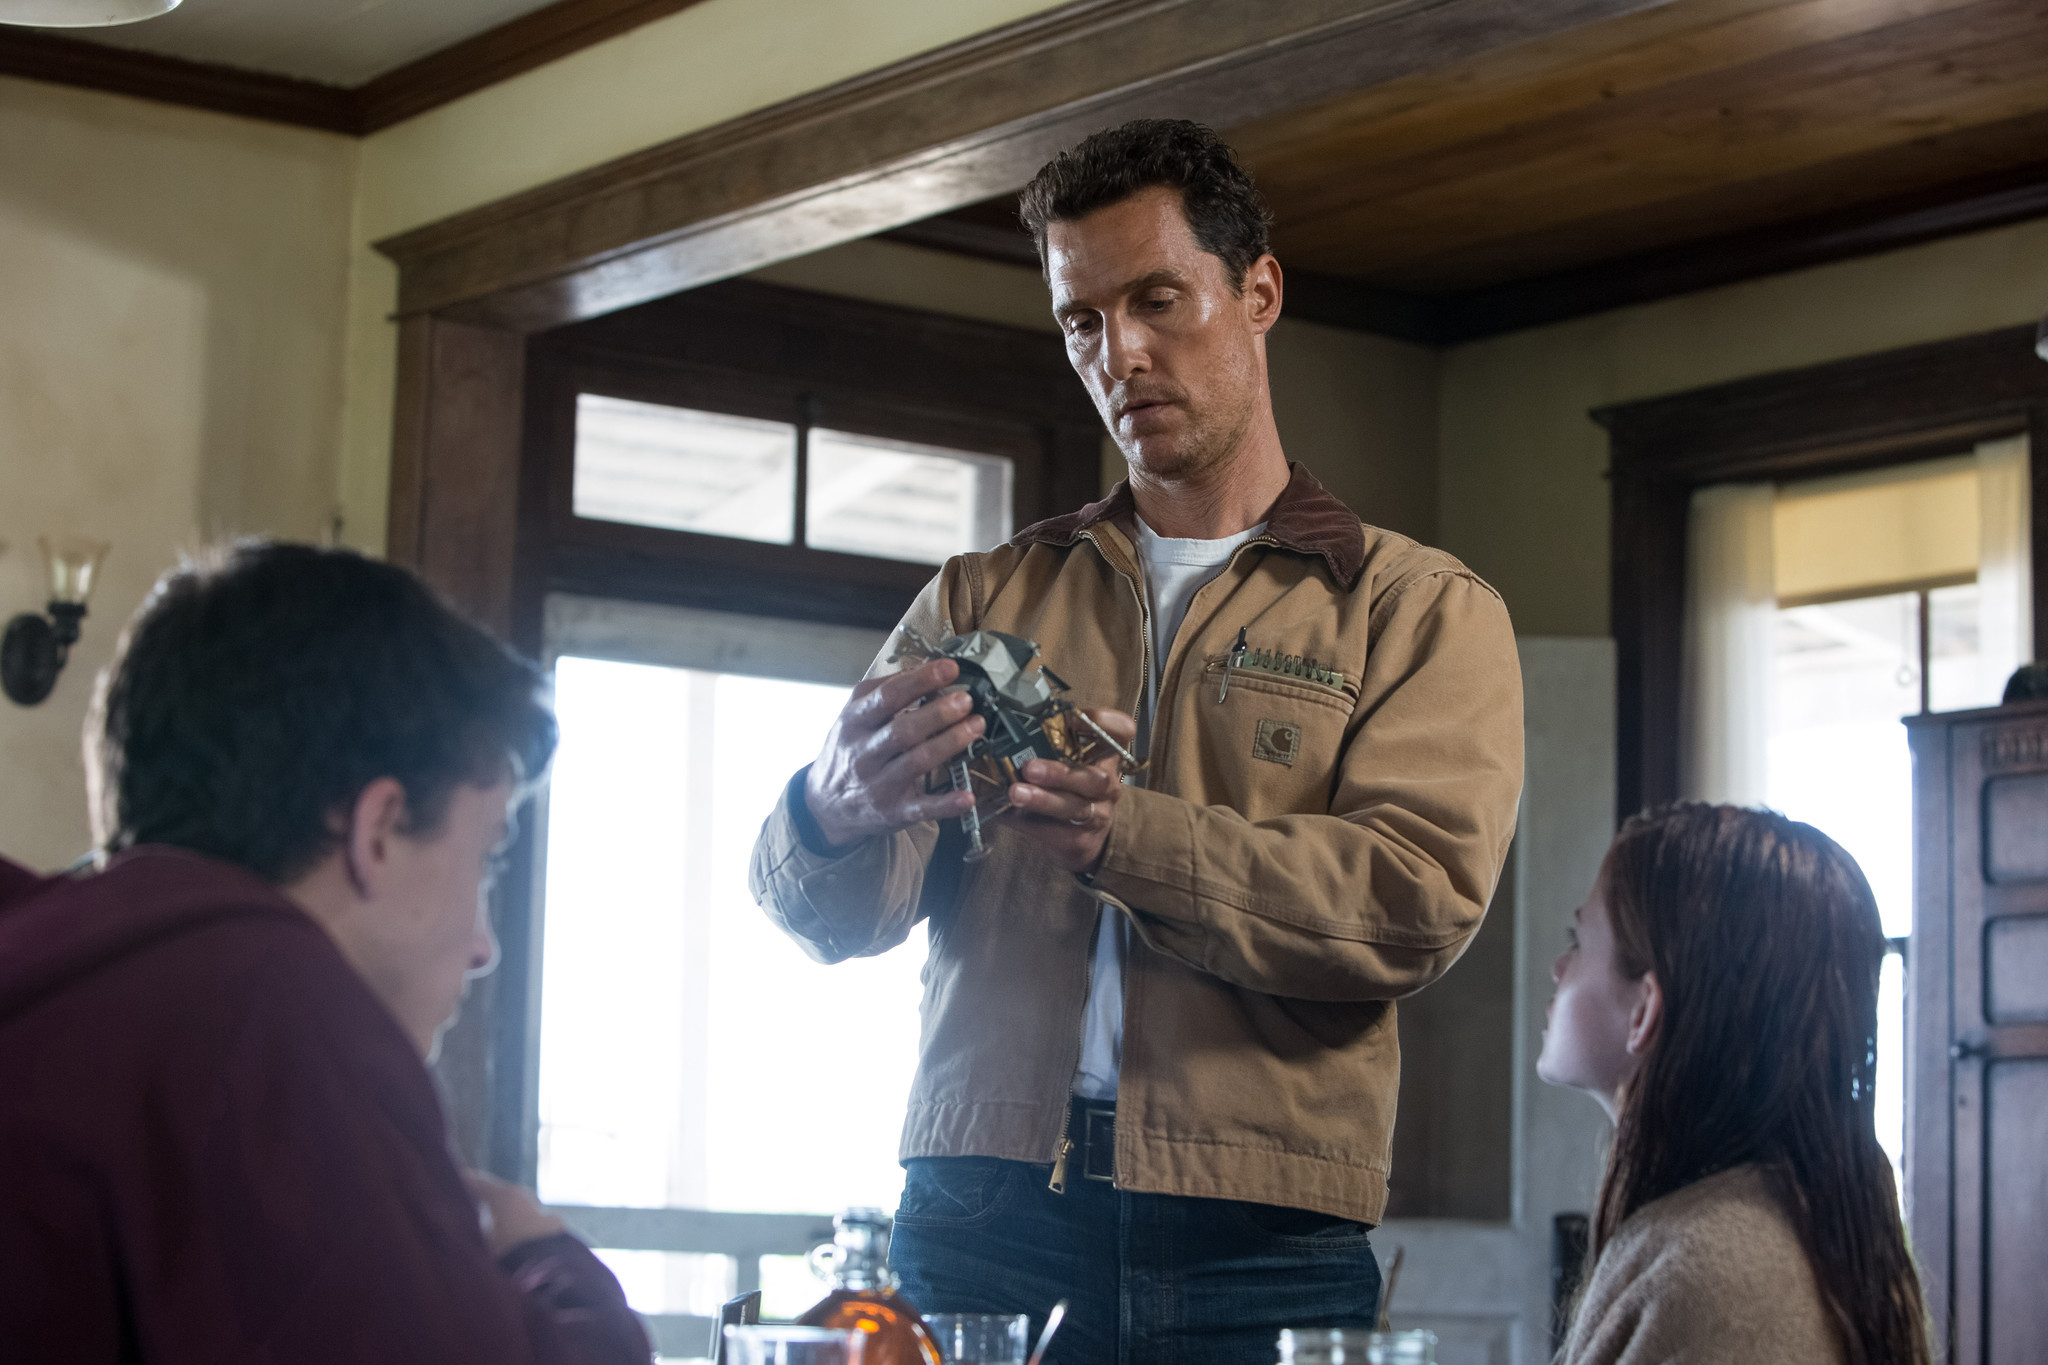 'Interstellar' to open two days early in select film-using theaters